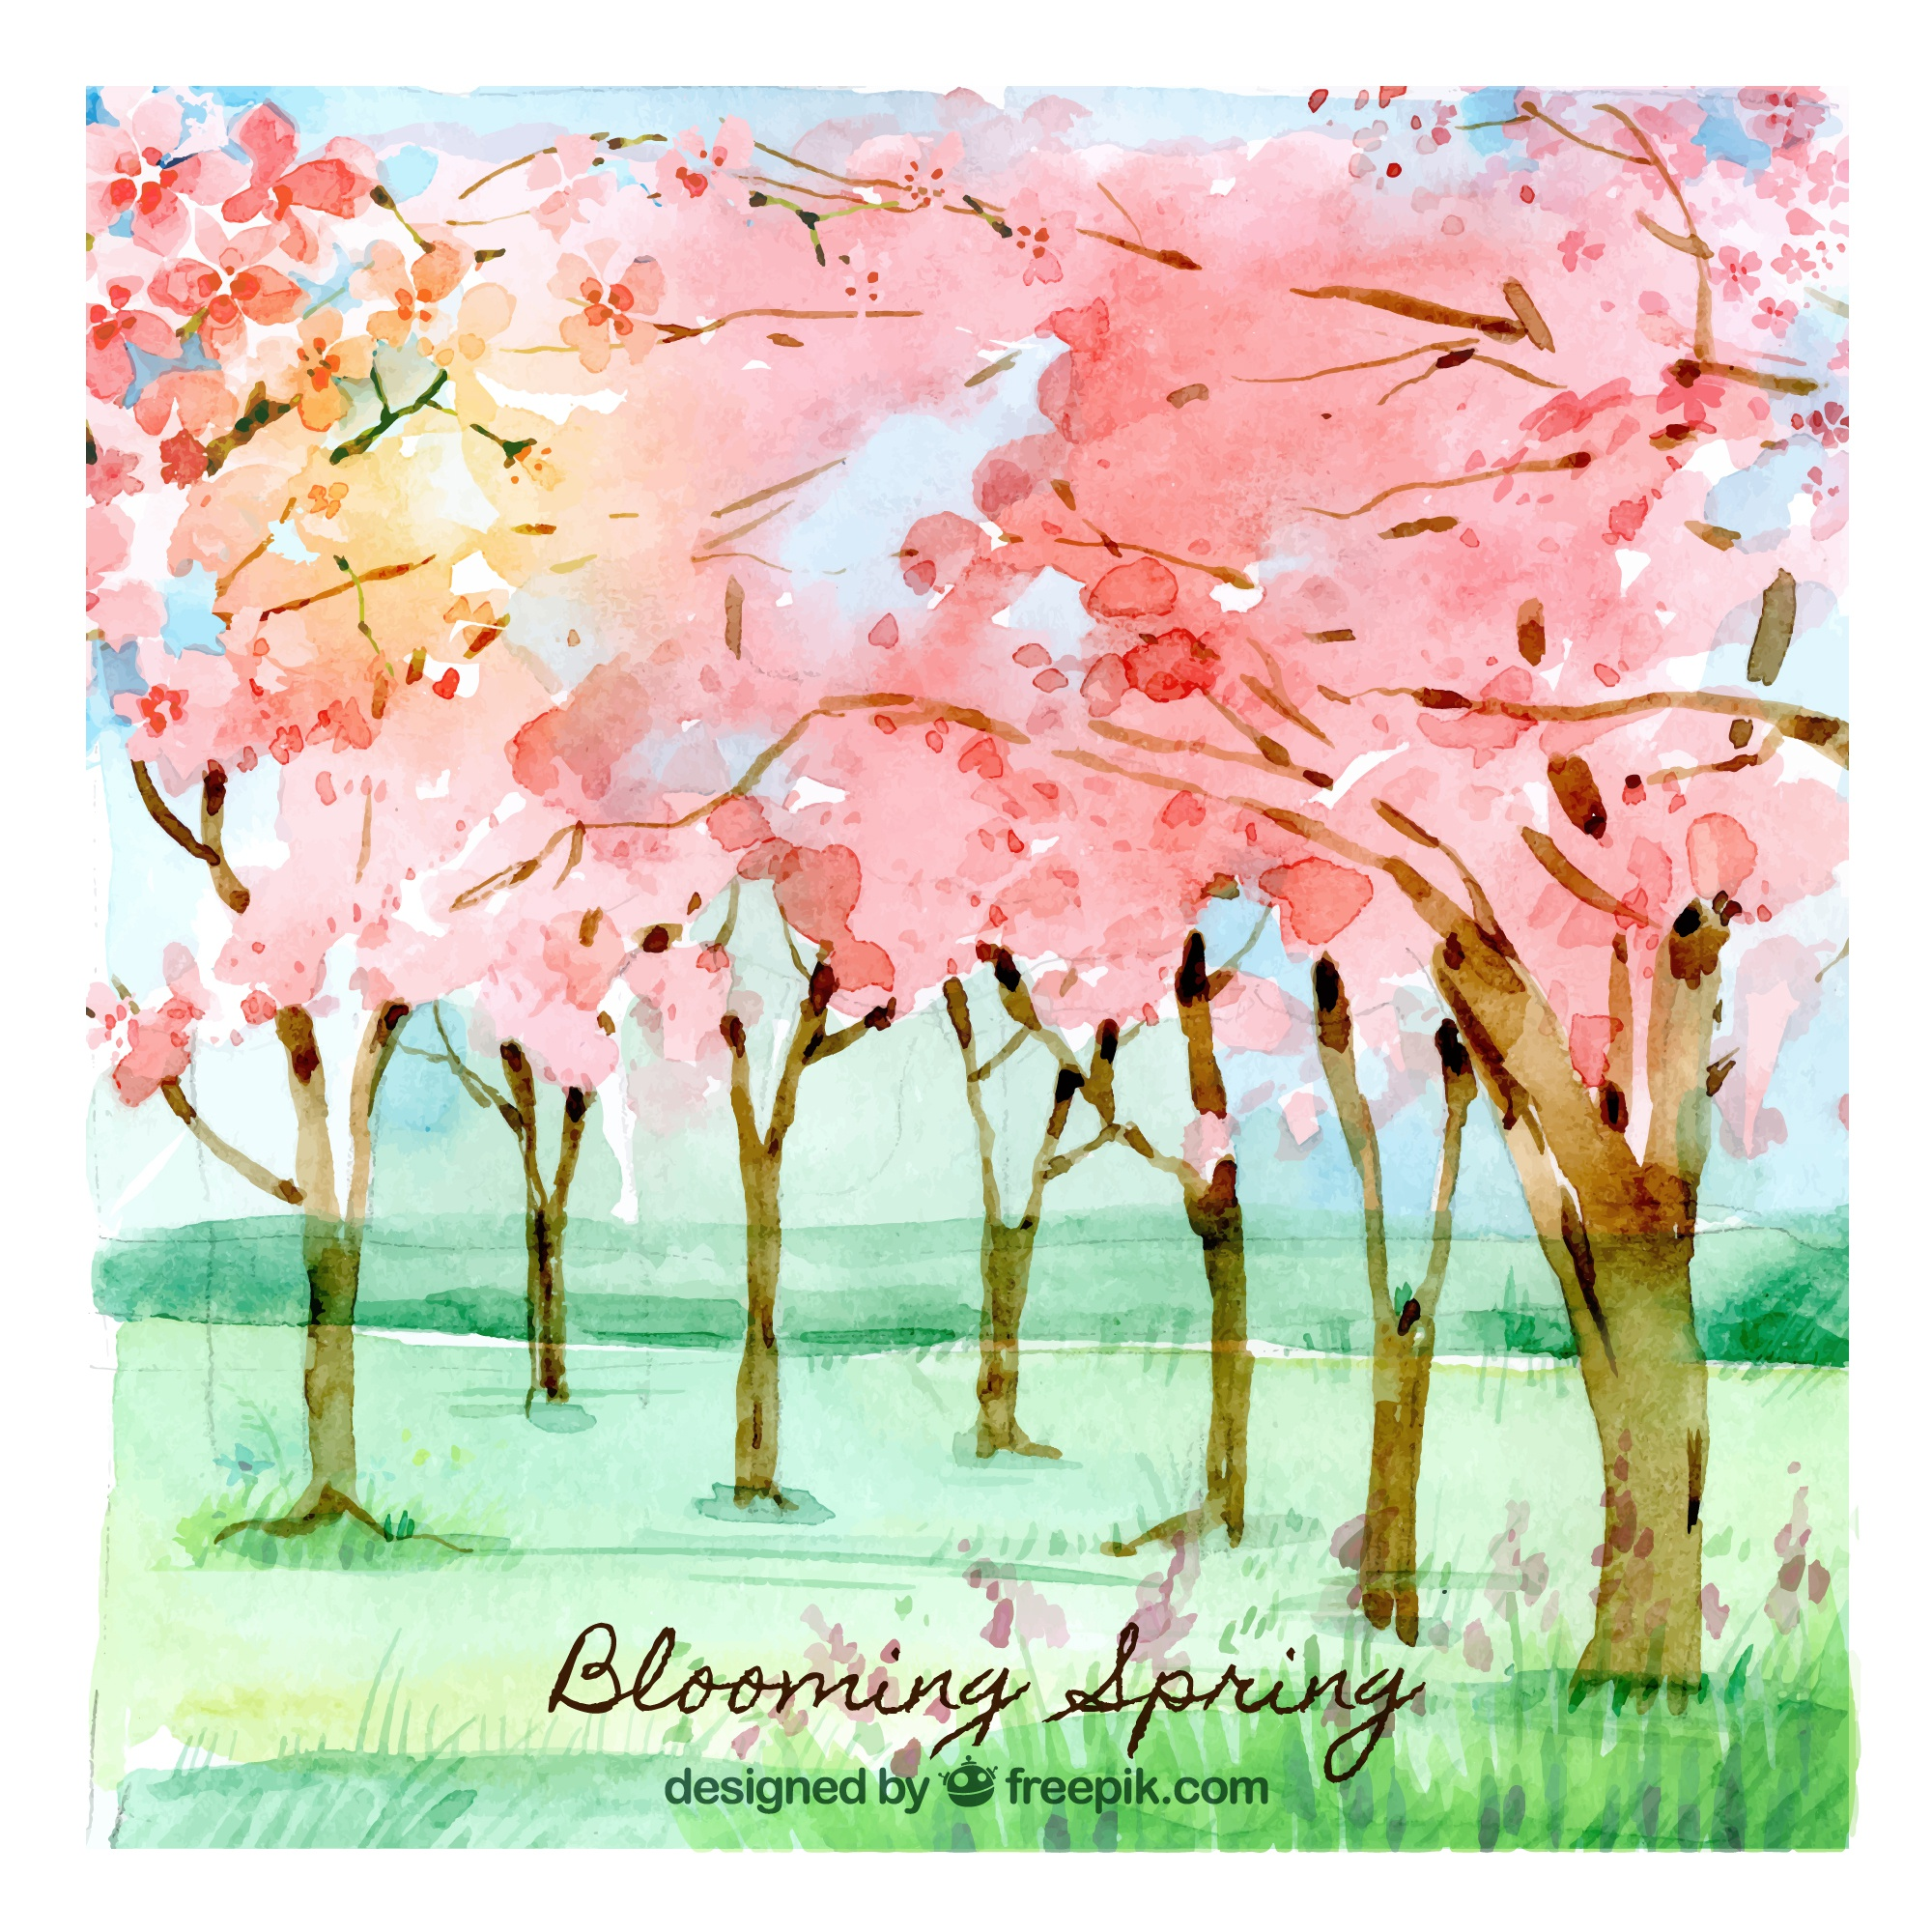 Blooming spring background in watercolor style